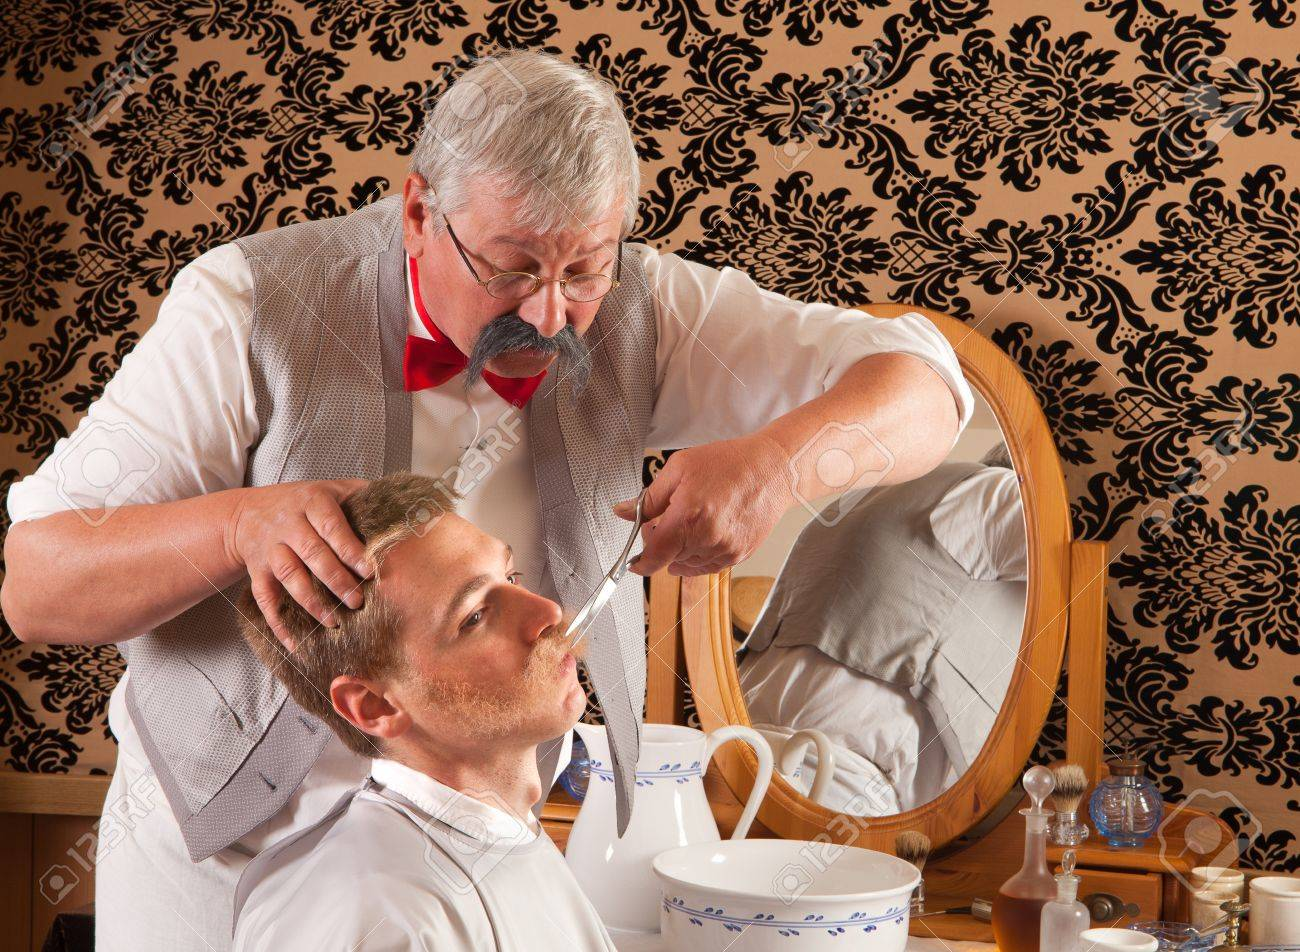 Barber cutting the mustache of a customer in an antique victorian barbershop Stock Photo - 9600669